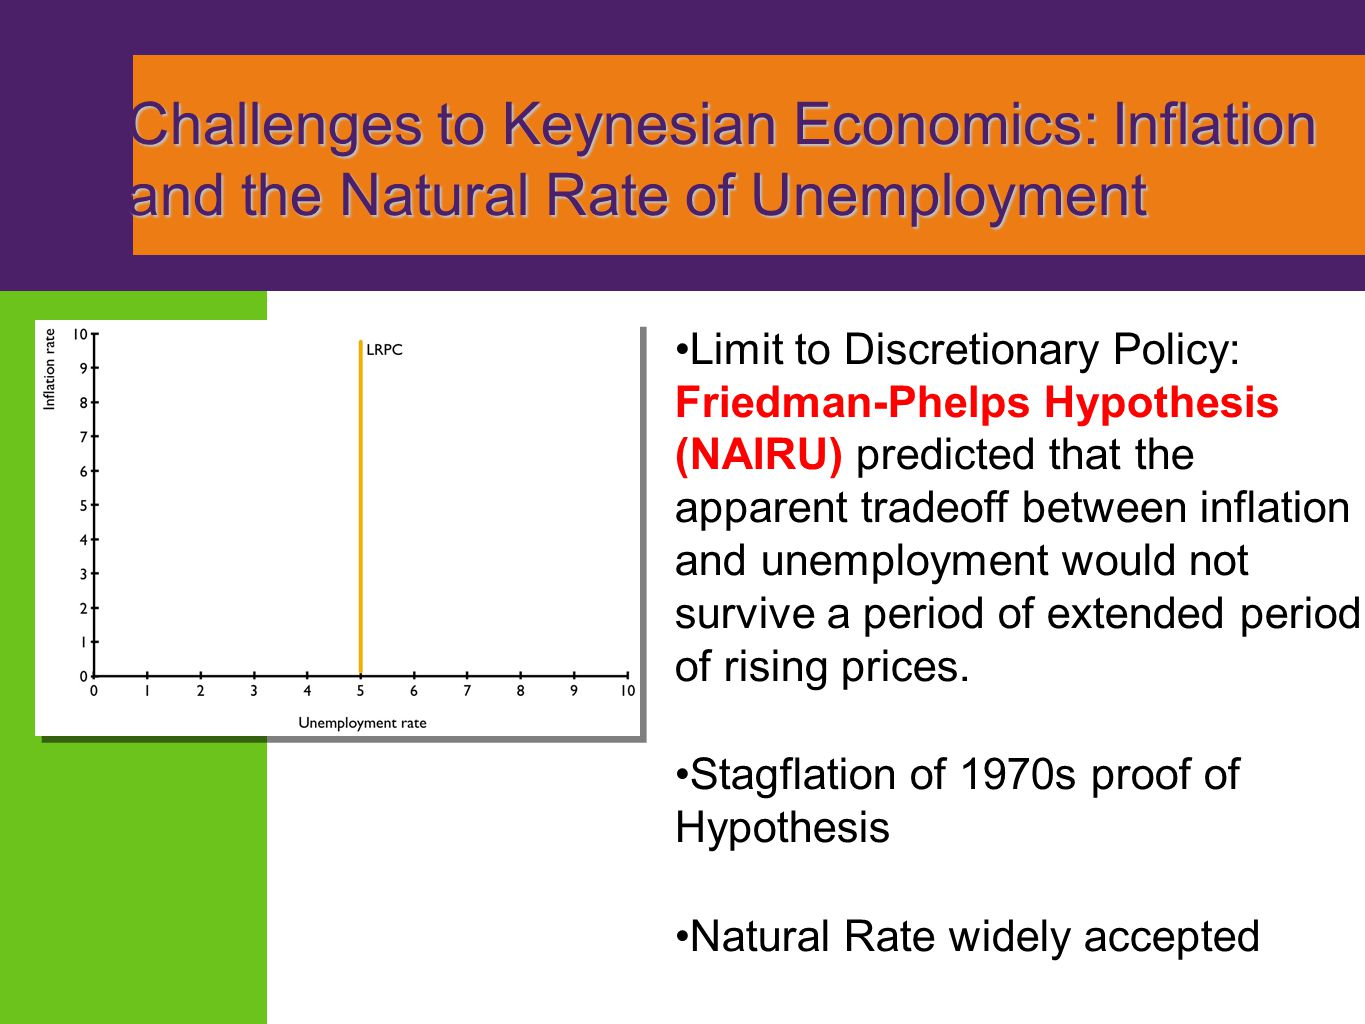 Challenges to Keynesian Economics: Inflation and the Natural Rate of Unemployment